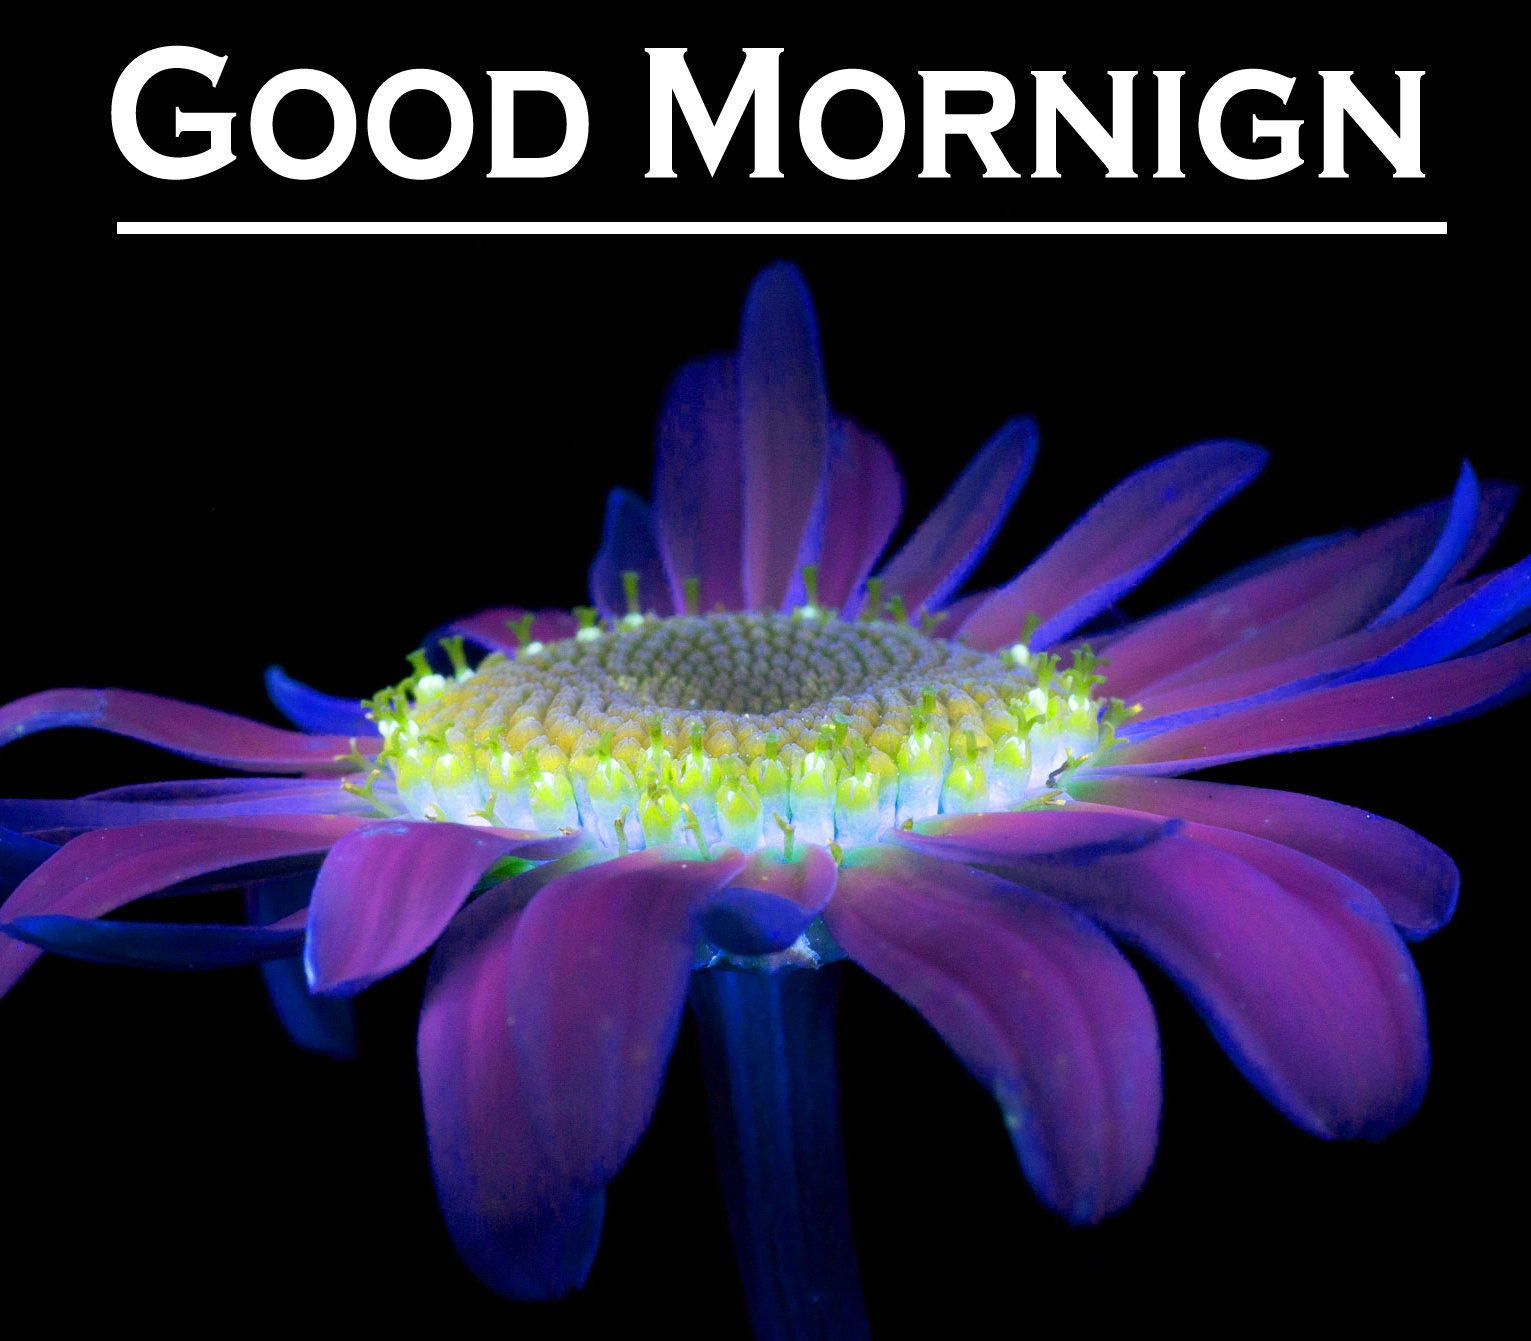 Flower Good Morning Images 1